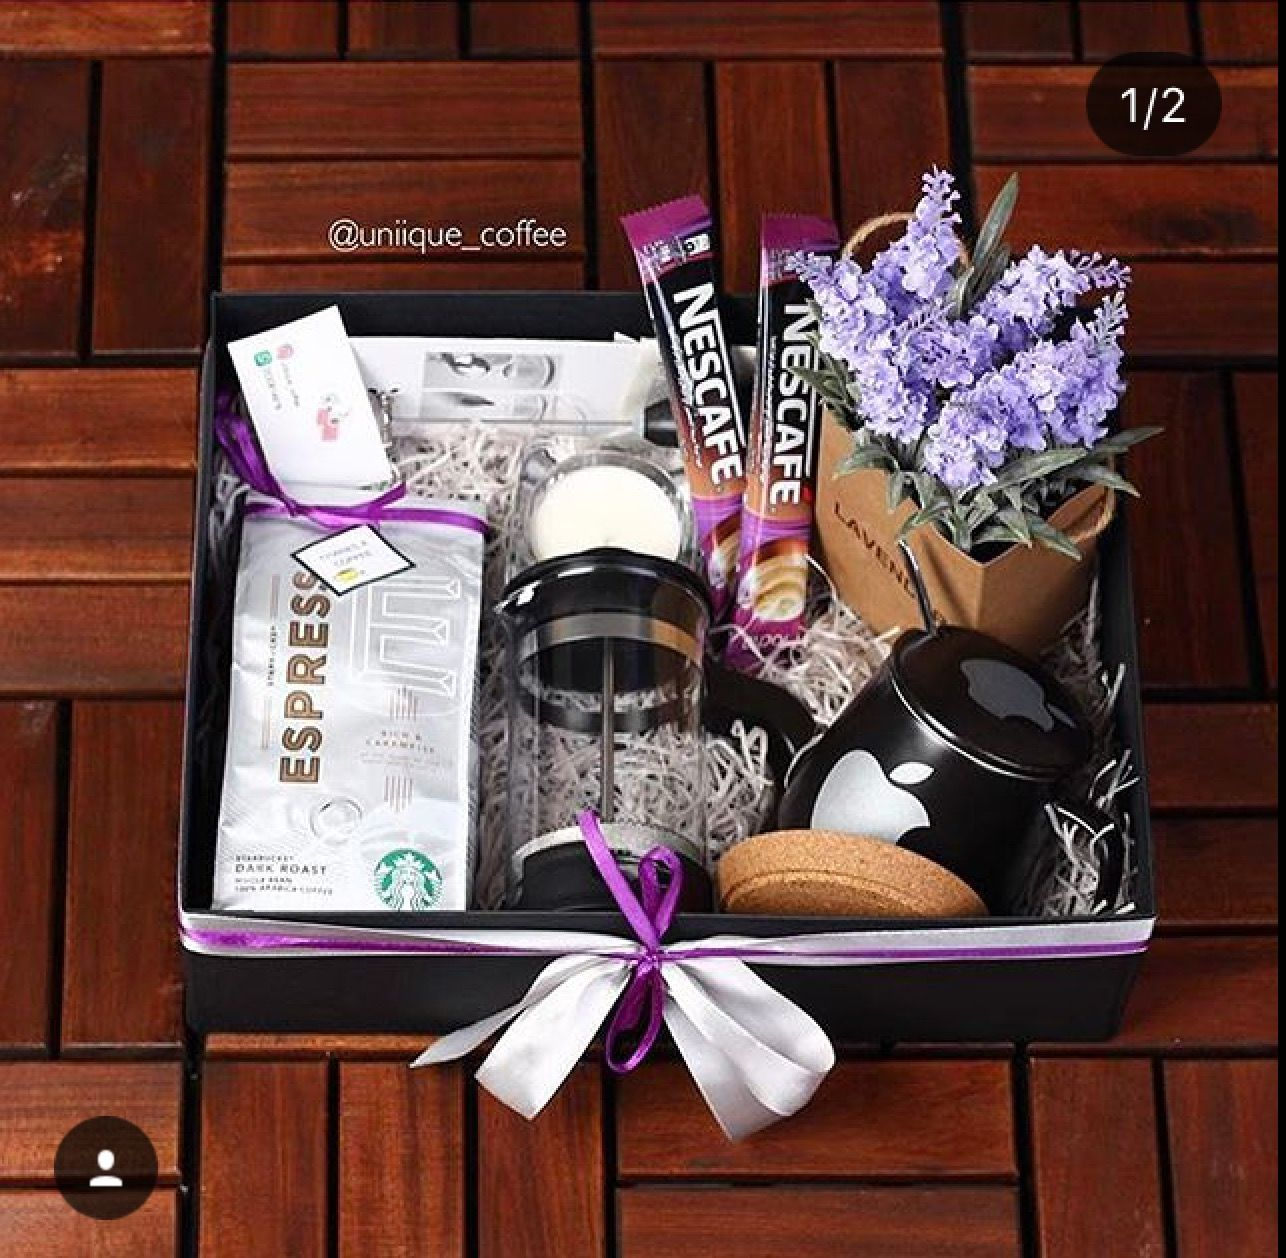 Pin By Radwa On Gift Gift Wrapping Techniques Coffee Gifts Box Coffee Gifts